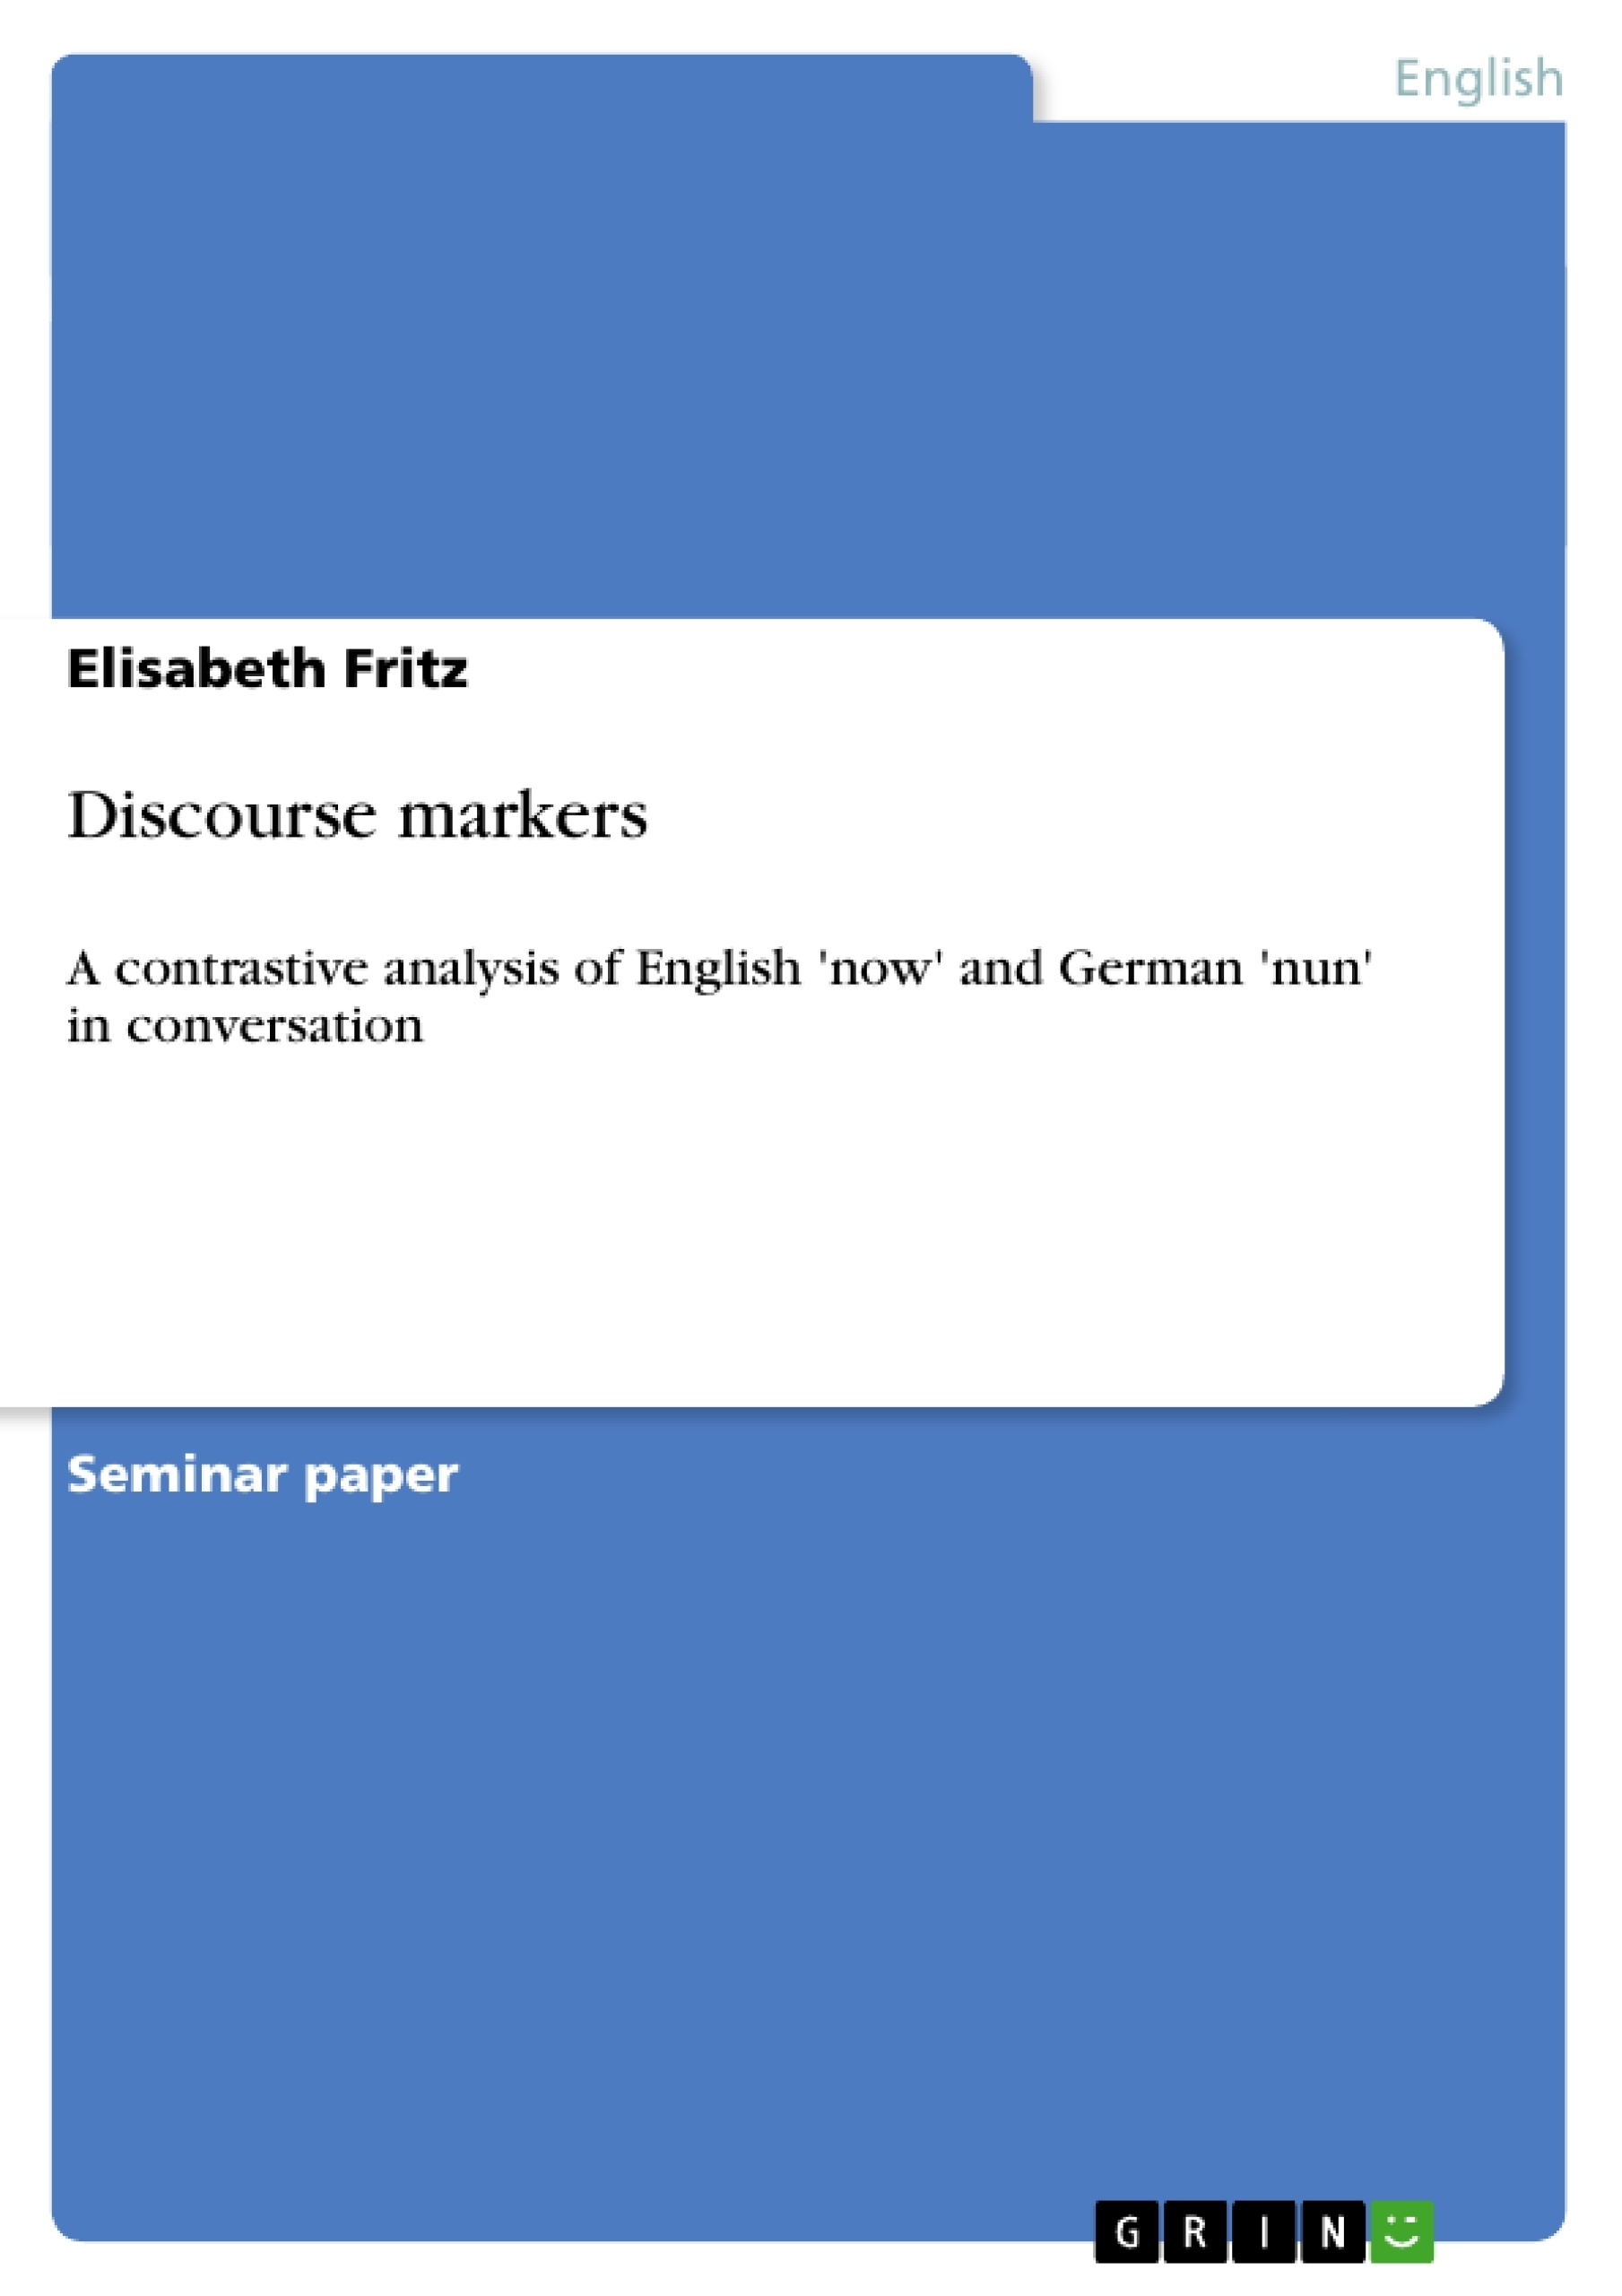 Title: Discourse markers